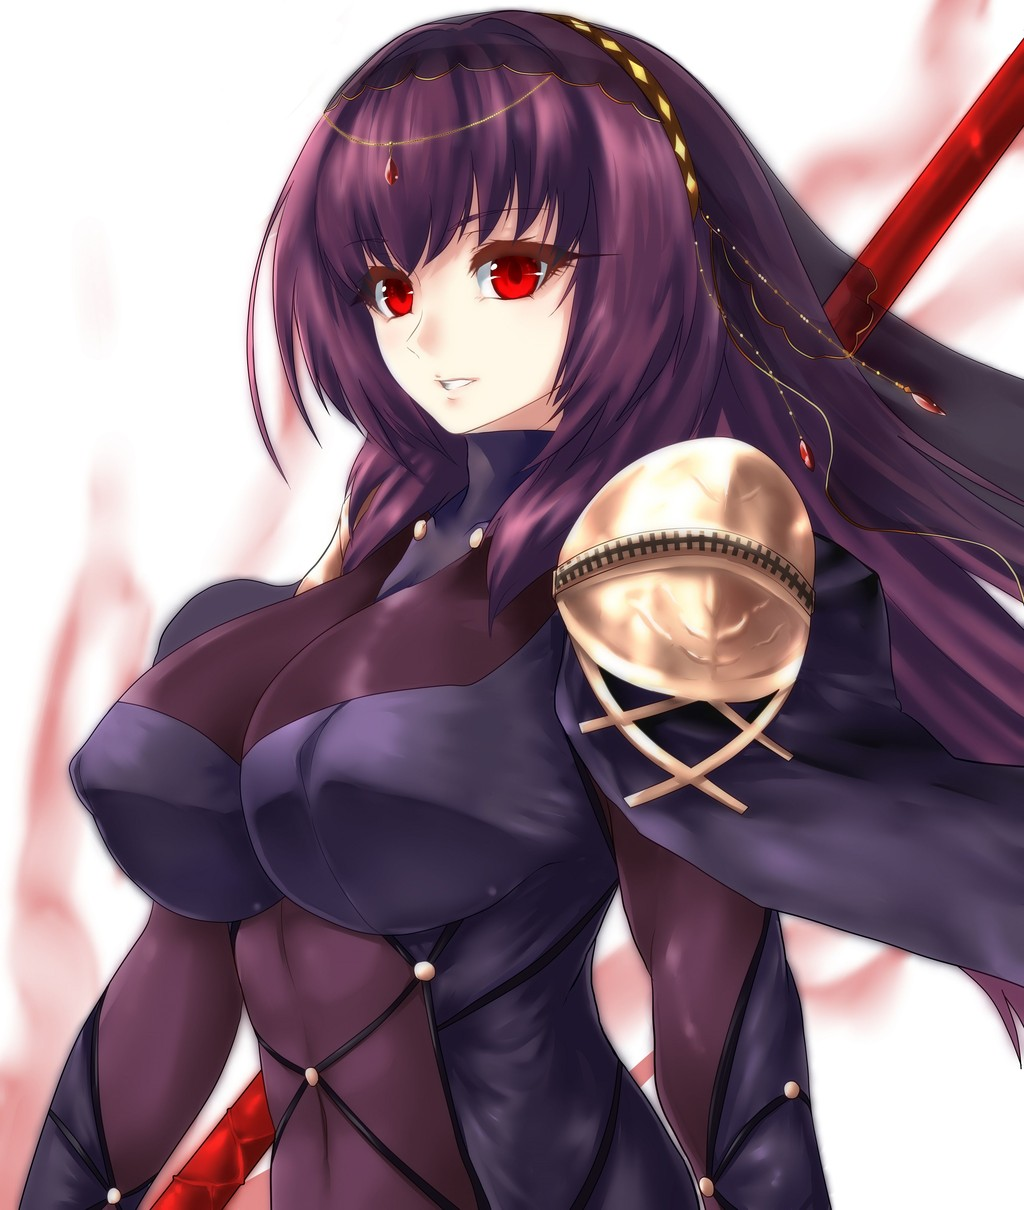 scathach_(fategrand_order)183